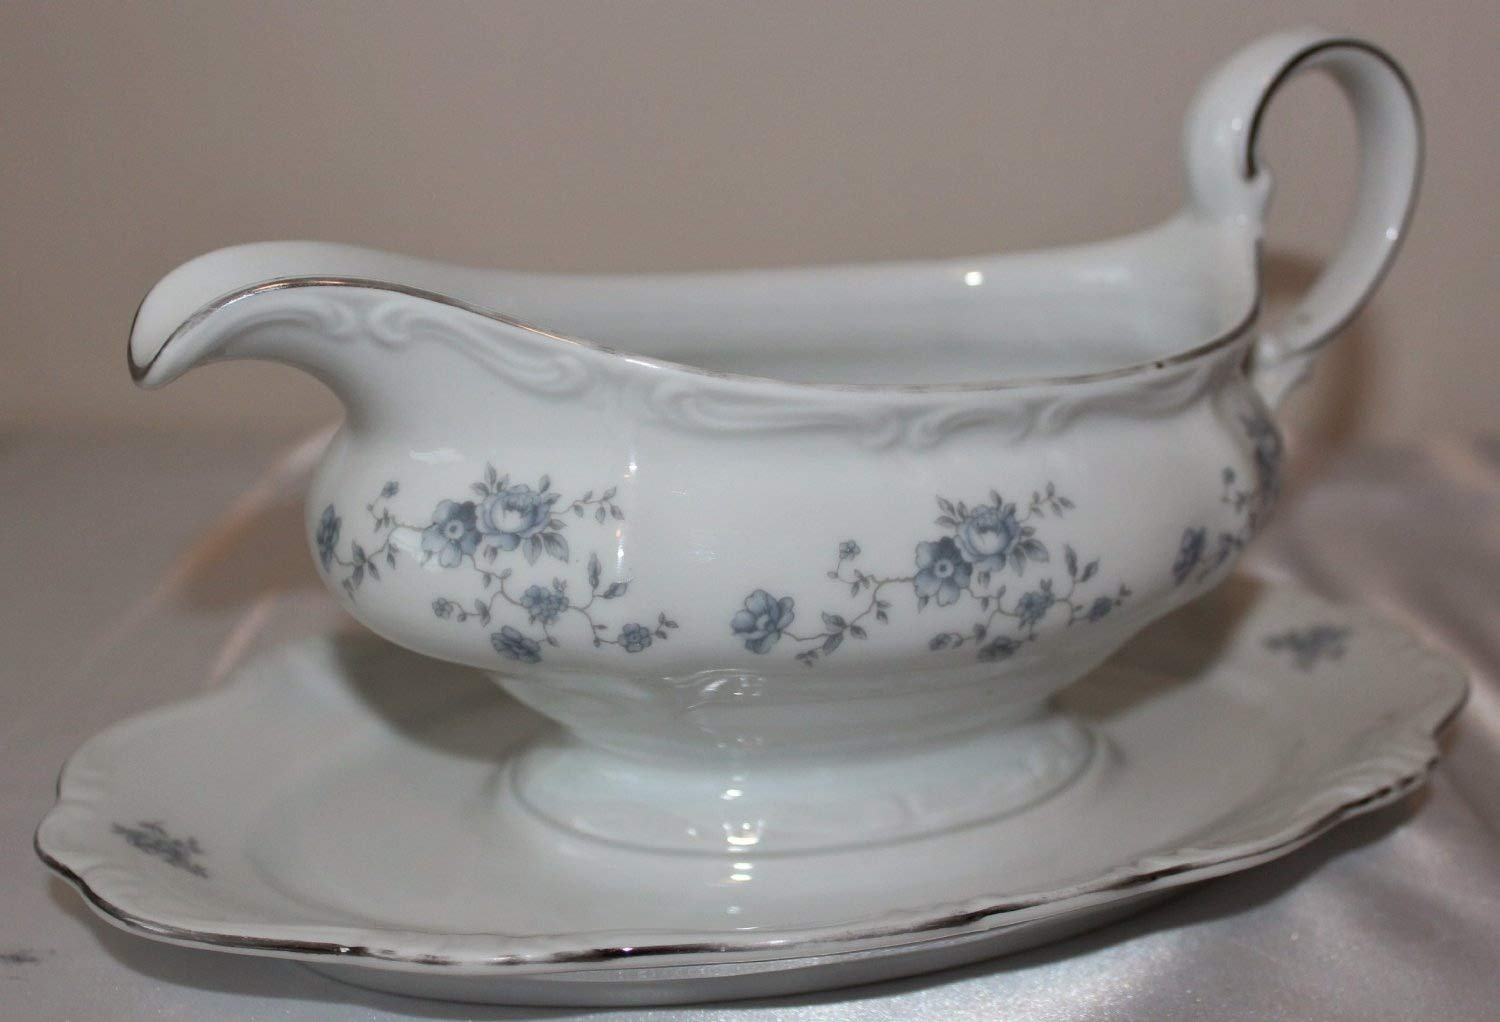 Johann Haviland Bavaria Germany Blue Garland Gravy Boat w/Attached Underplate - Haviland Classic - White Bone Porcelain with Floral Blue Garland and Trimmed in Platinum